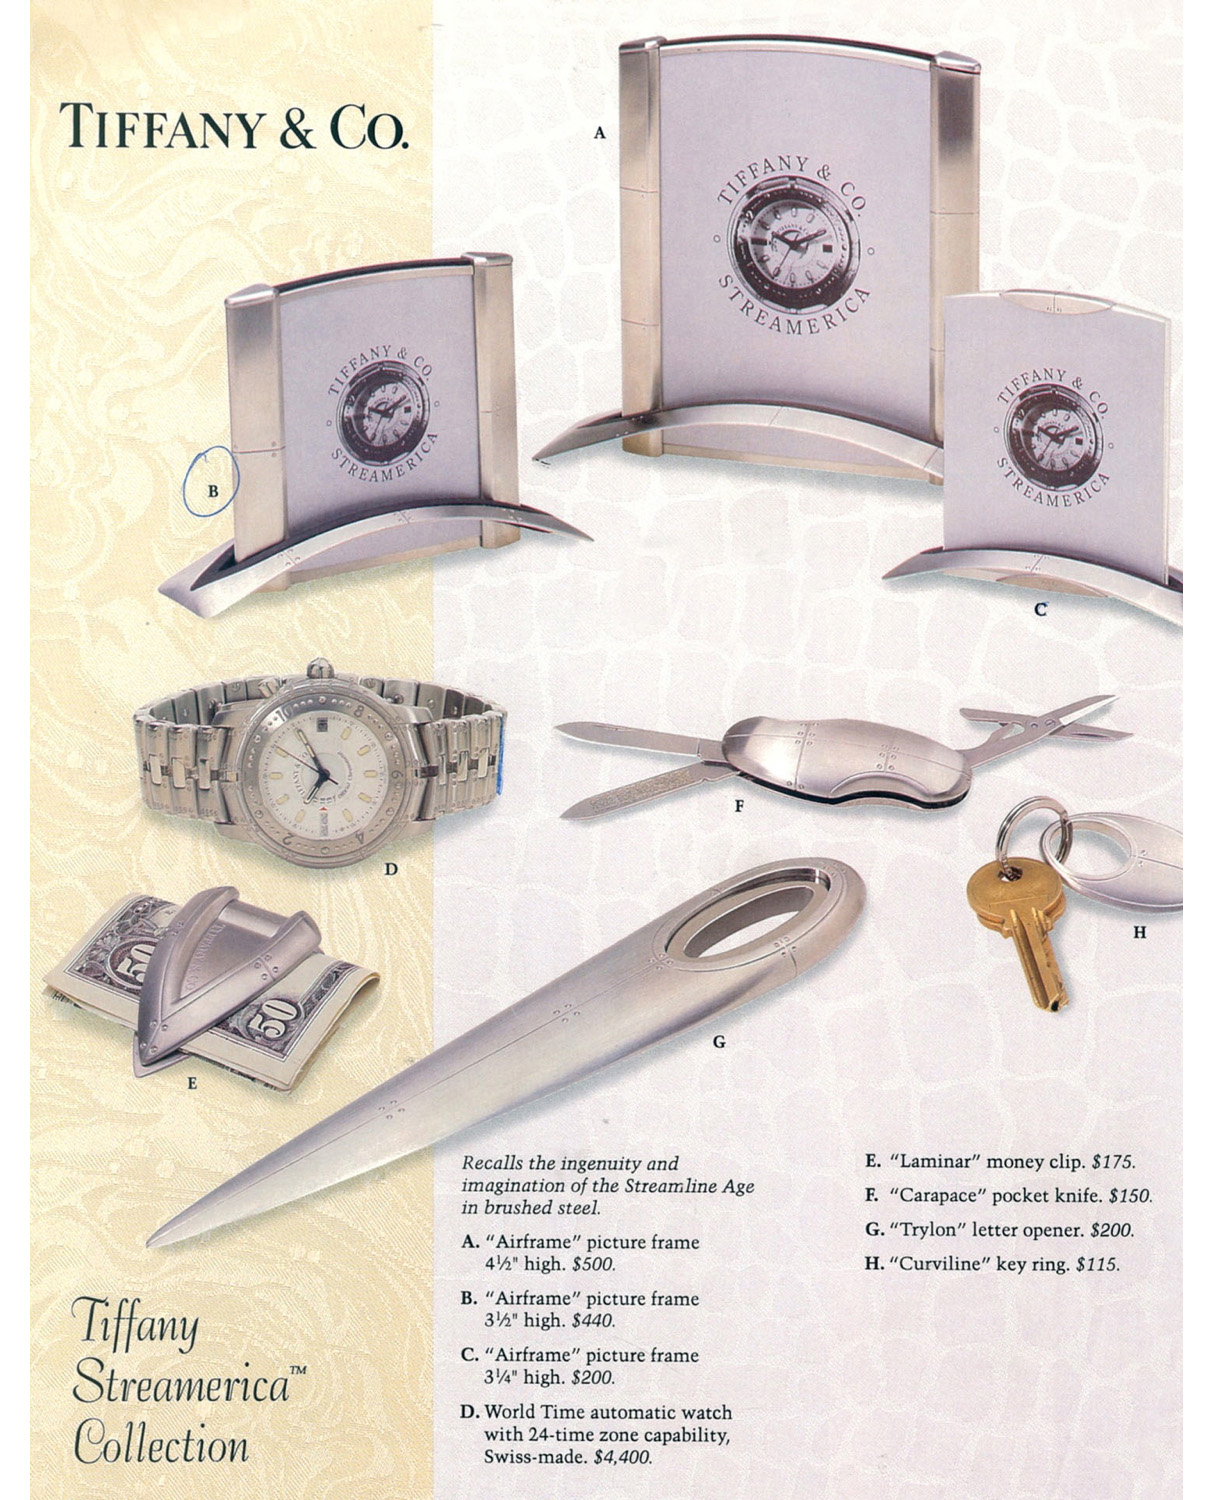 • Yamrun jewelers Tiffany Streamerica Collection 1993 Stainless Steel Airframe Picture Frames World Time Automatic Watch Carapace Pocket Knife Laminar Money Clip, Trylon Letter Opener, and Curviline Key Ring, all with 1993 prices.